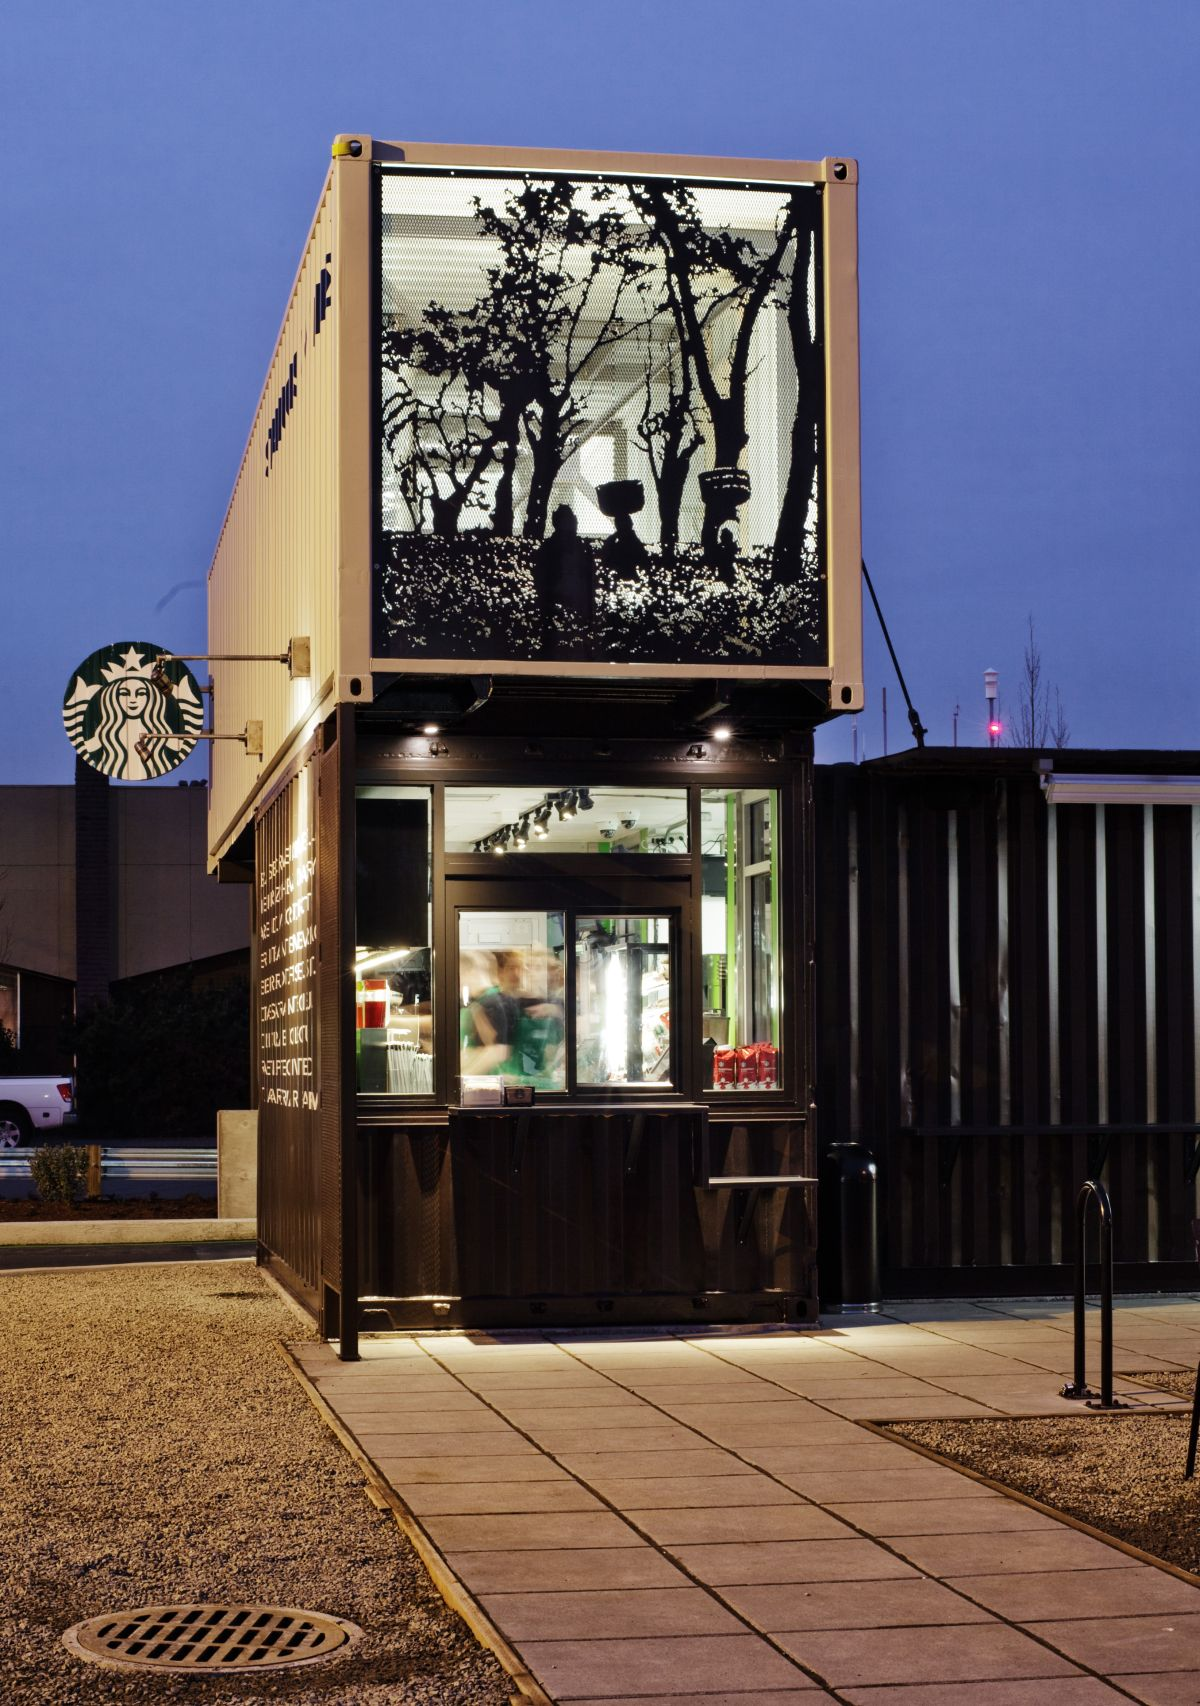 House design with shop - Starbucks Coffee Shop Made From Shipping Containers Design